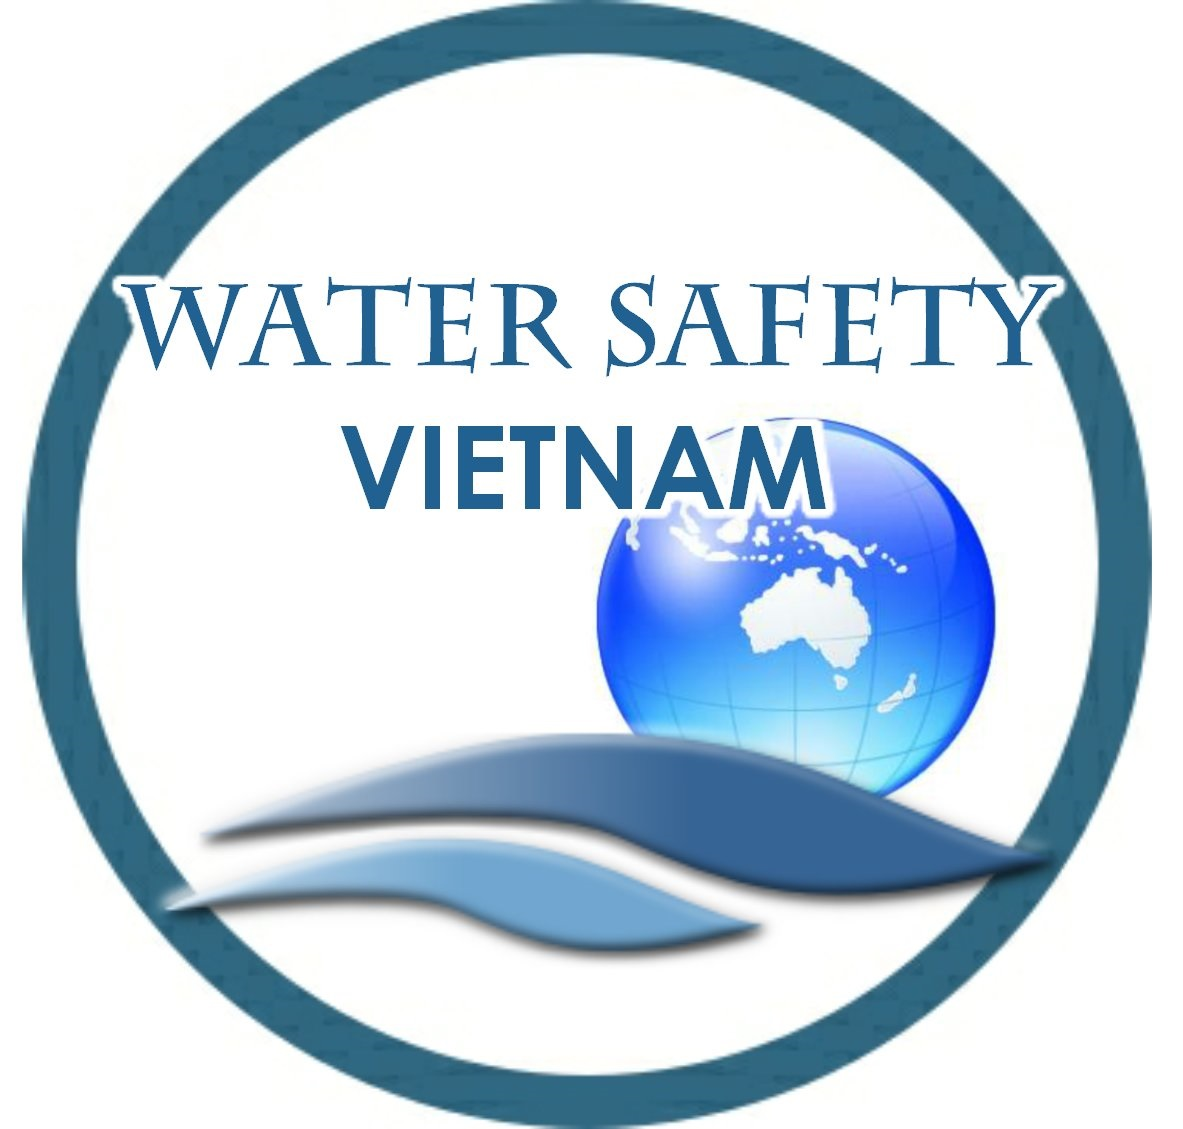 Water Safety Vietnam, Charity Organisation, Saving Vietnamese Child